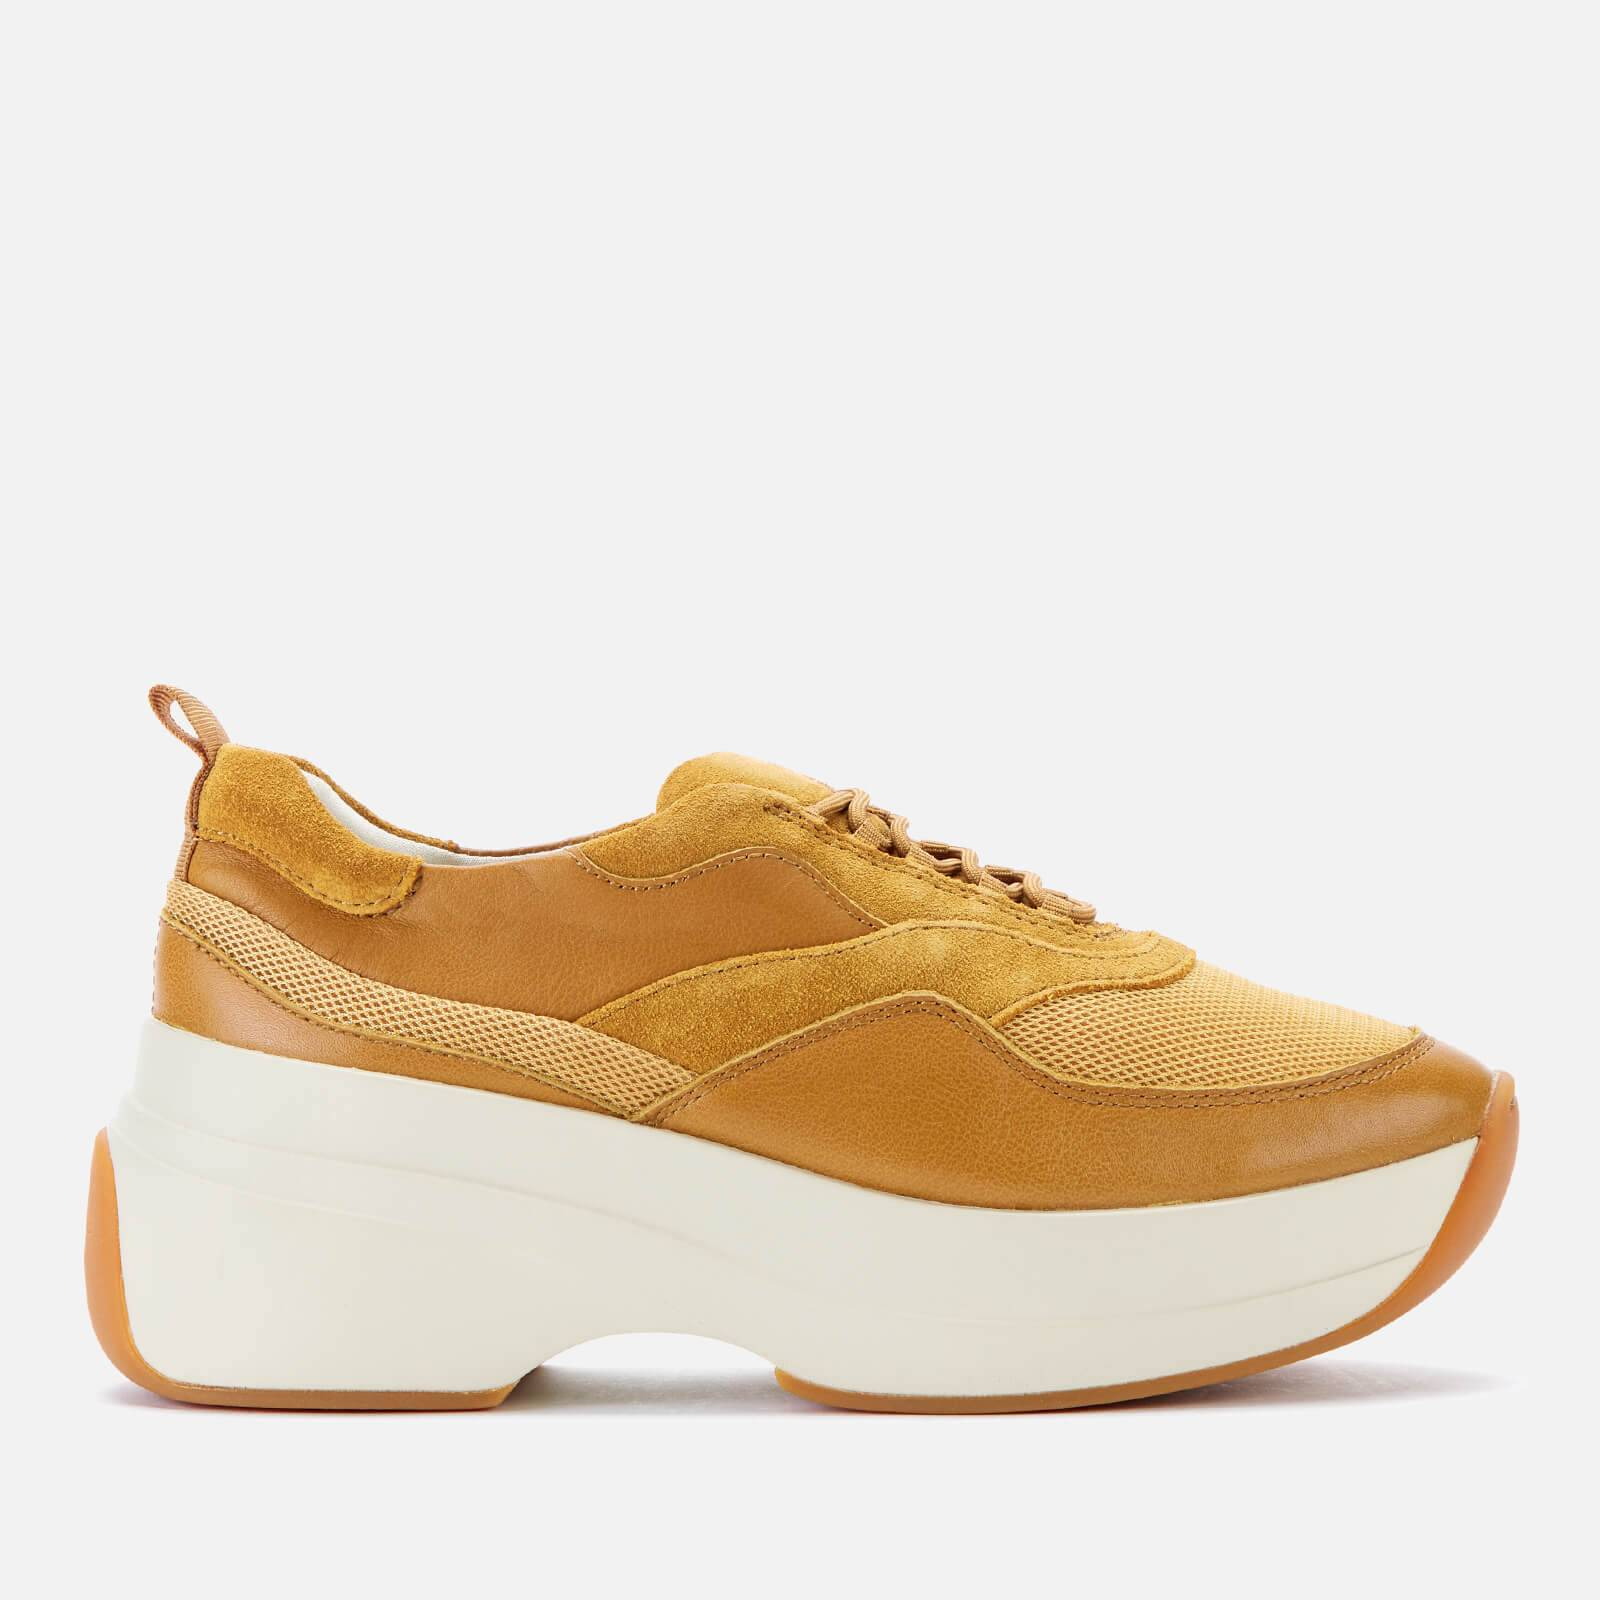 Vagabond Women's Sprint 2.0 Chunky Trainers - Golden Oat - UK 5 - Yellow